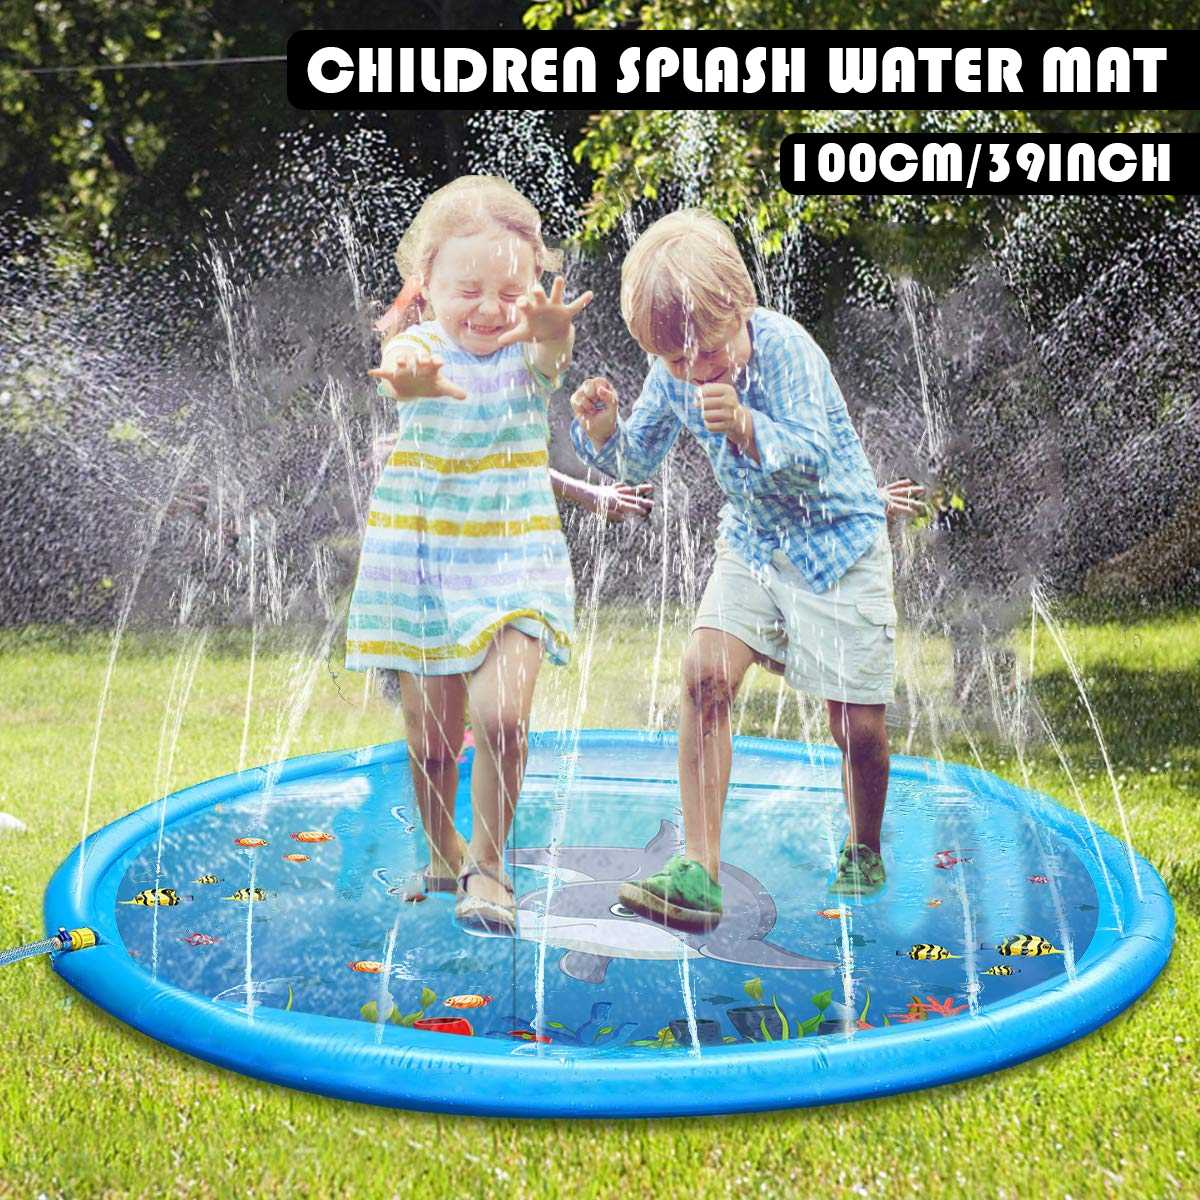 Hot Summer Baby Kids Water Mat Irnfant Children Water Beach Spraying Cushion Outdoor Tub Swiming Pool Play Water Supplies For Ba